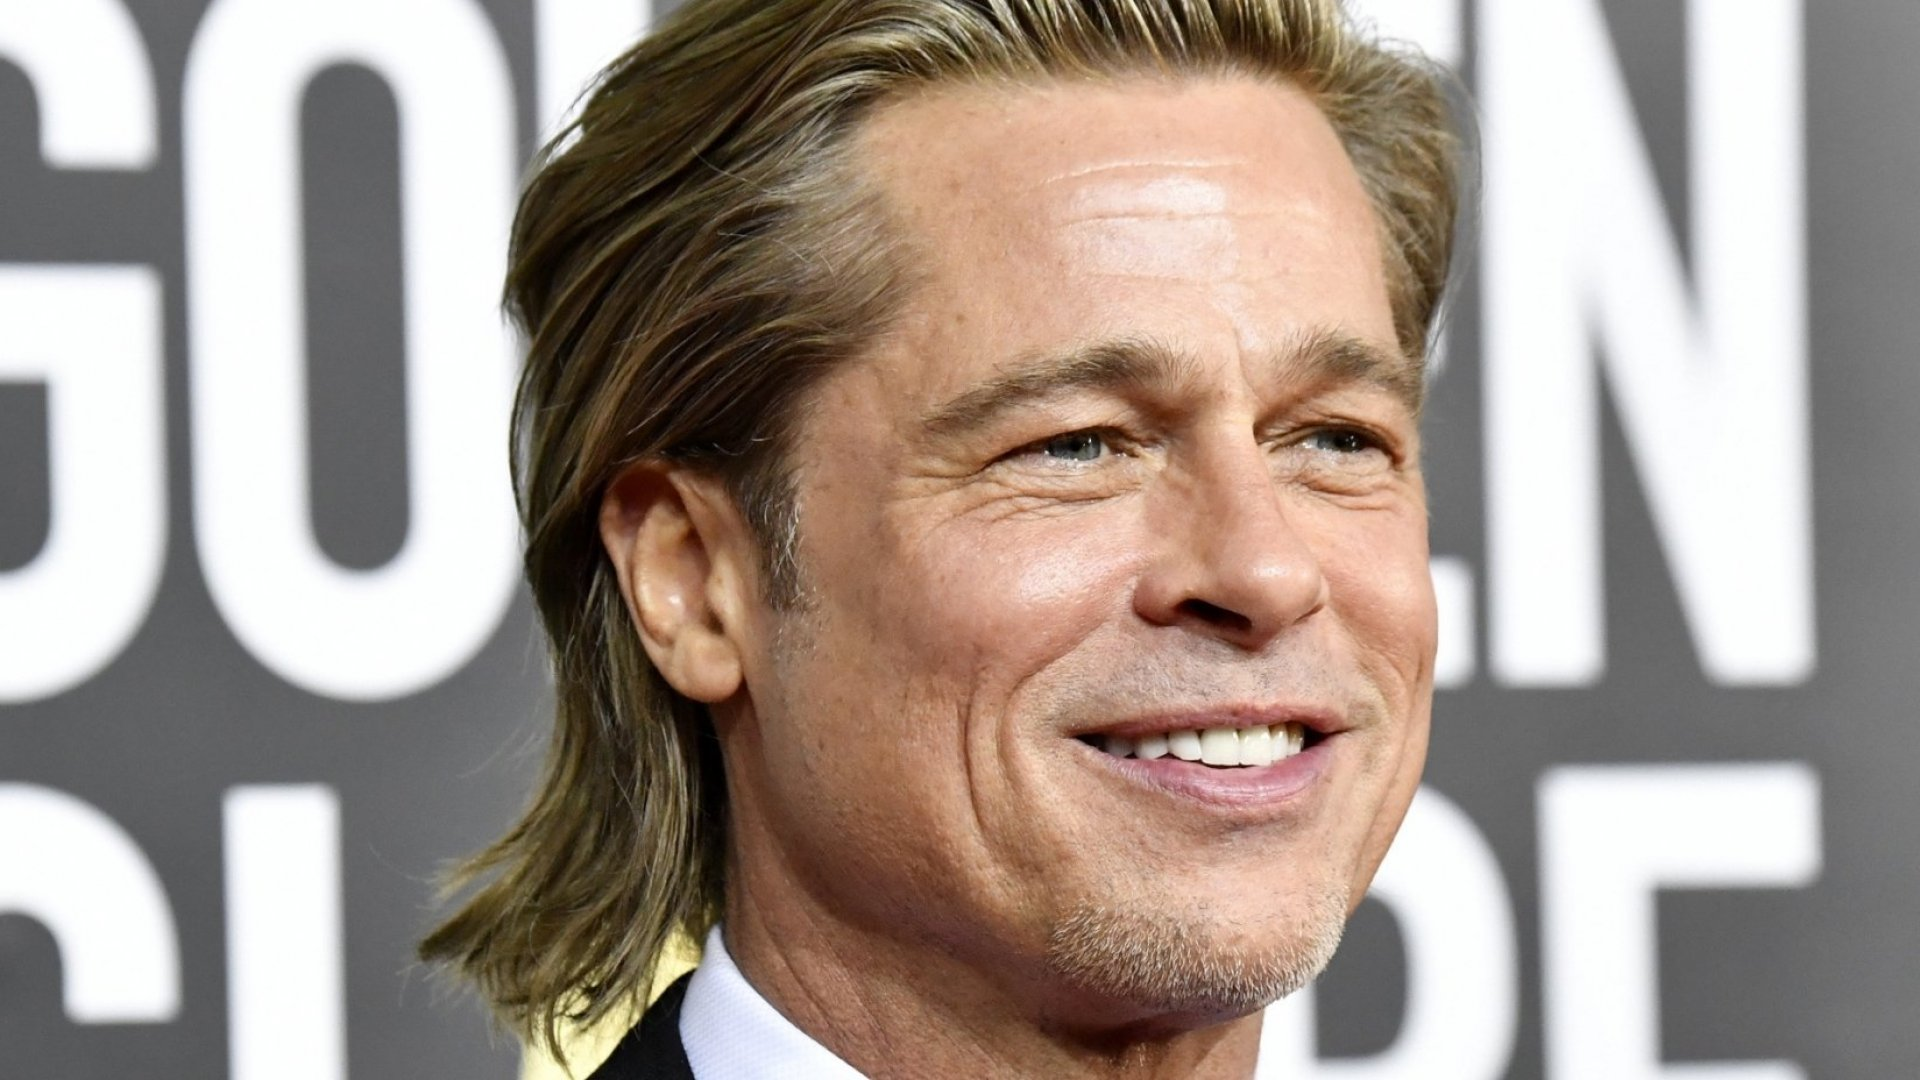 Overlooked in Brad Pitt's Hilarious Golden Globes Speech Was a Gift We Almost Always Want From Others, But Rarely Give. In 1 Sentence, Here It Is